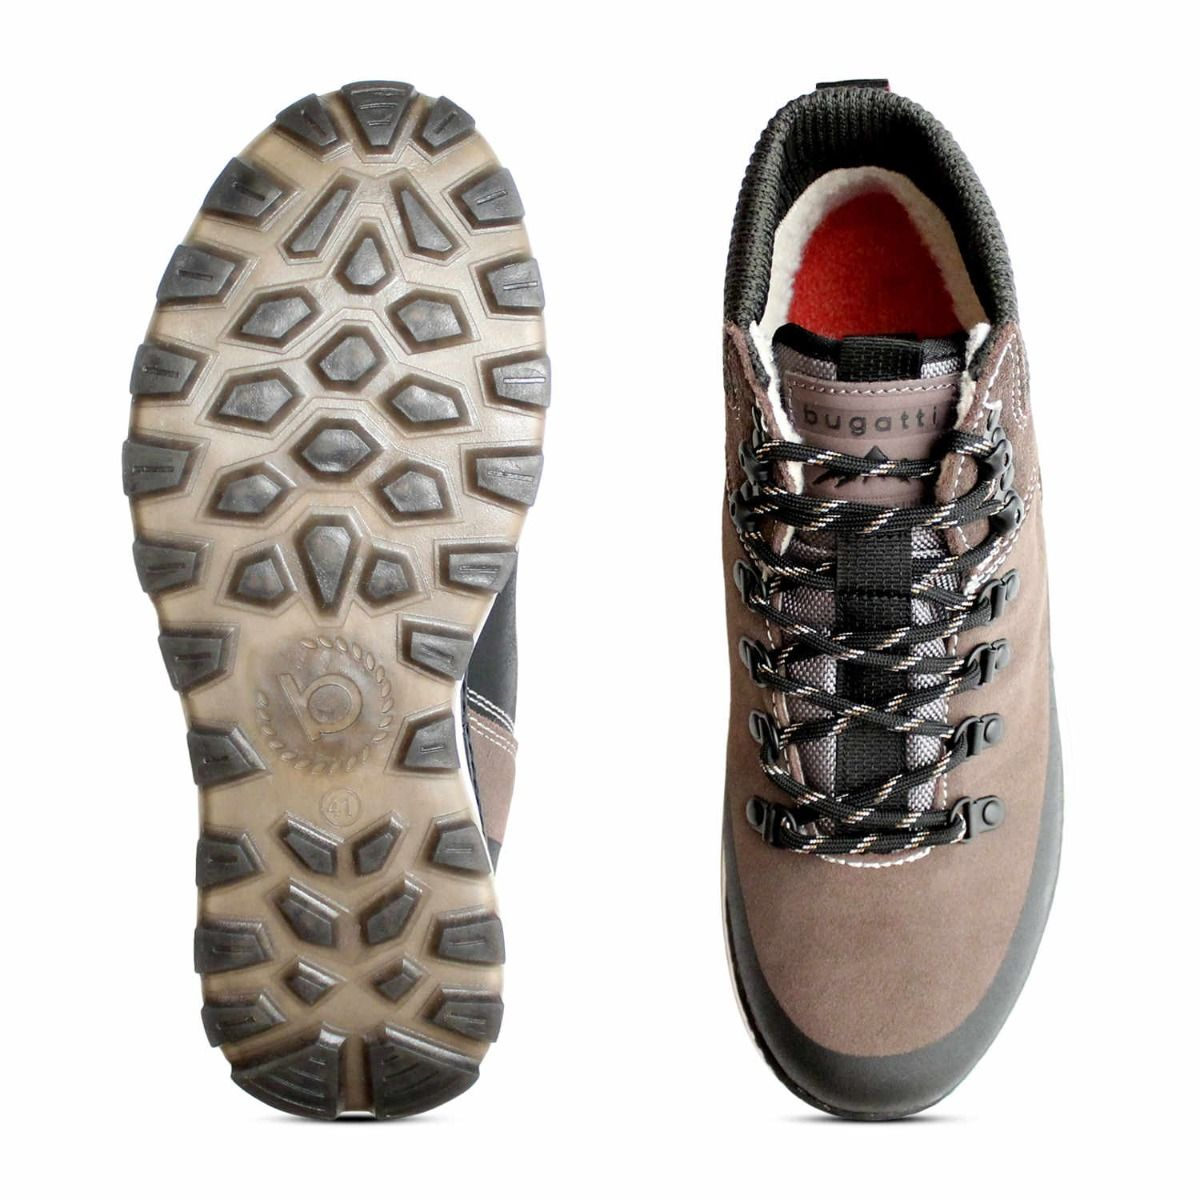 walking style boots